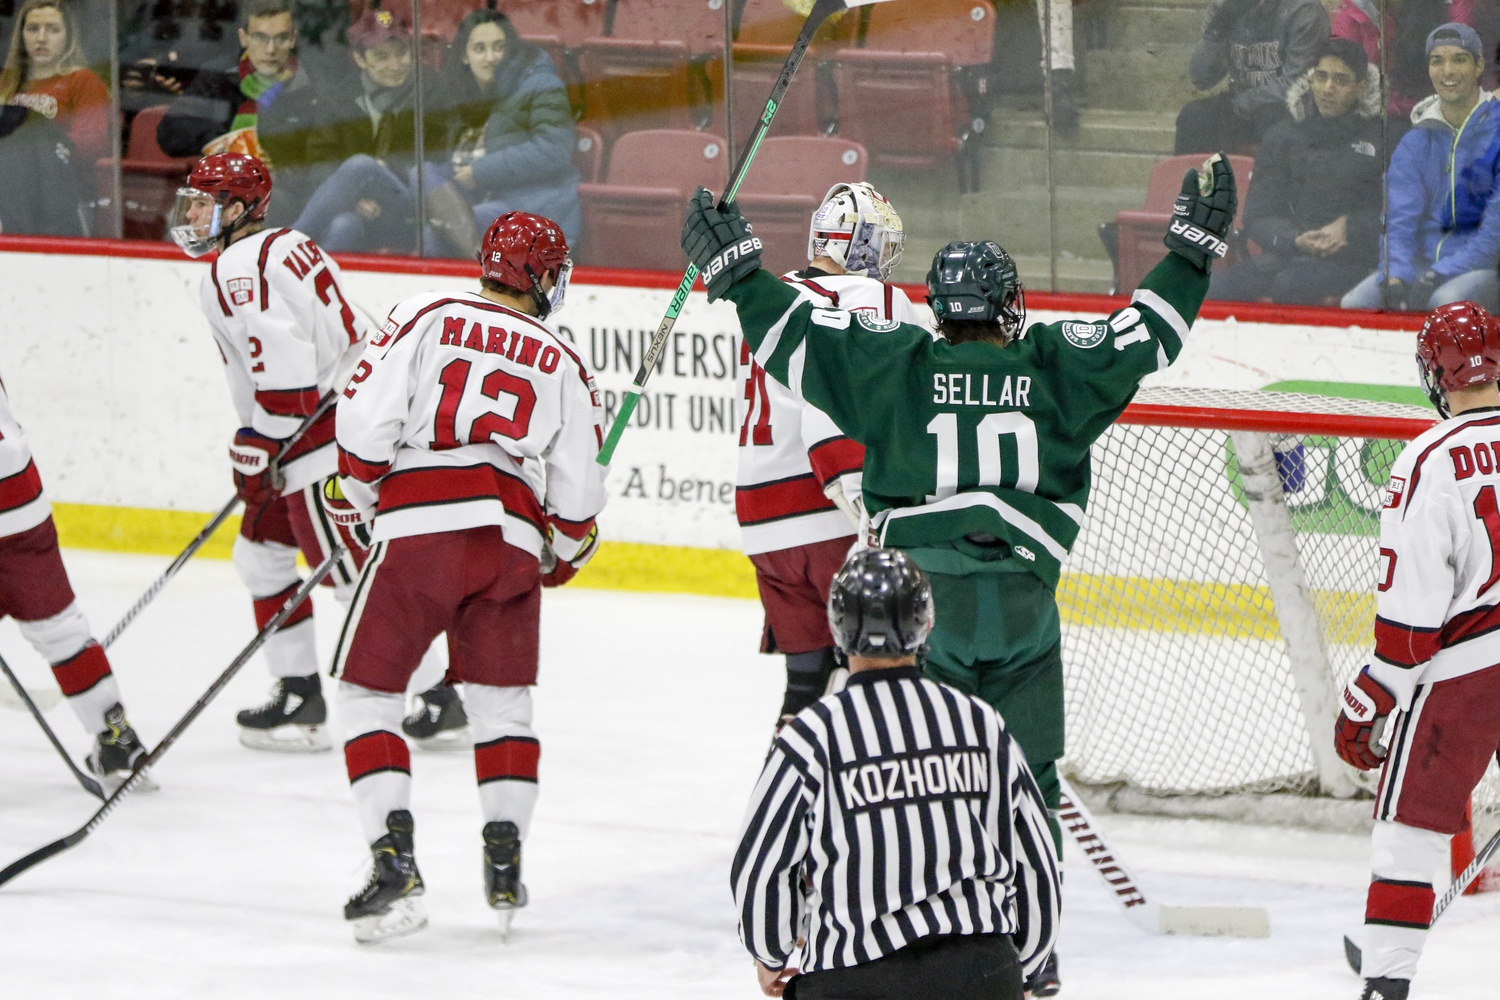 In both regular season contests between these teams, Dartmouth has found the net first. Harvard will want to stifle the Big Green's run-and-gun offense, or risk a repeat of last year's Game 1 loss.